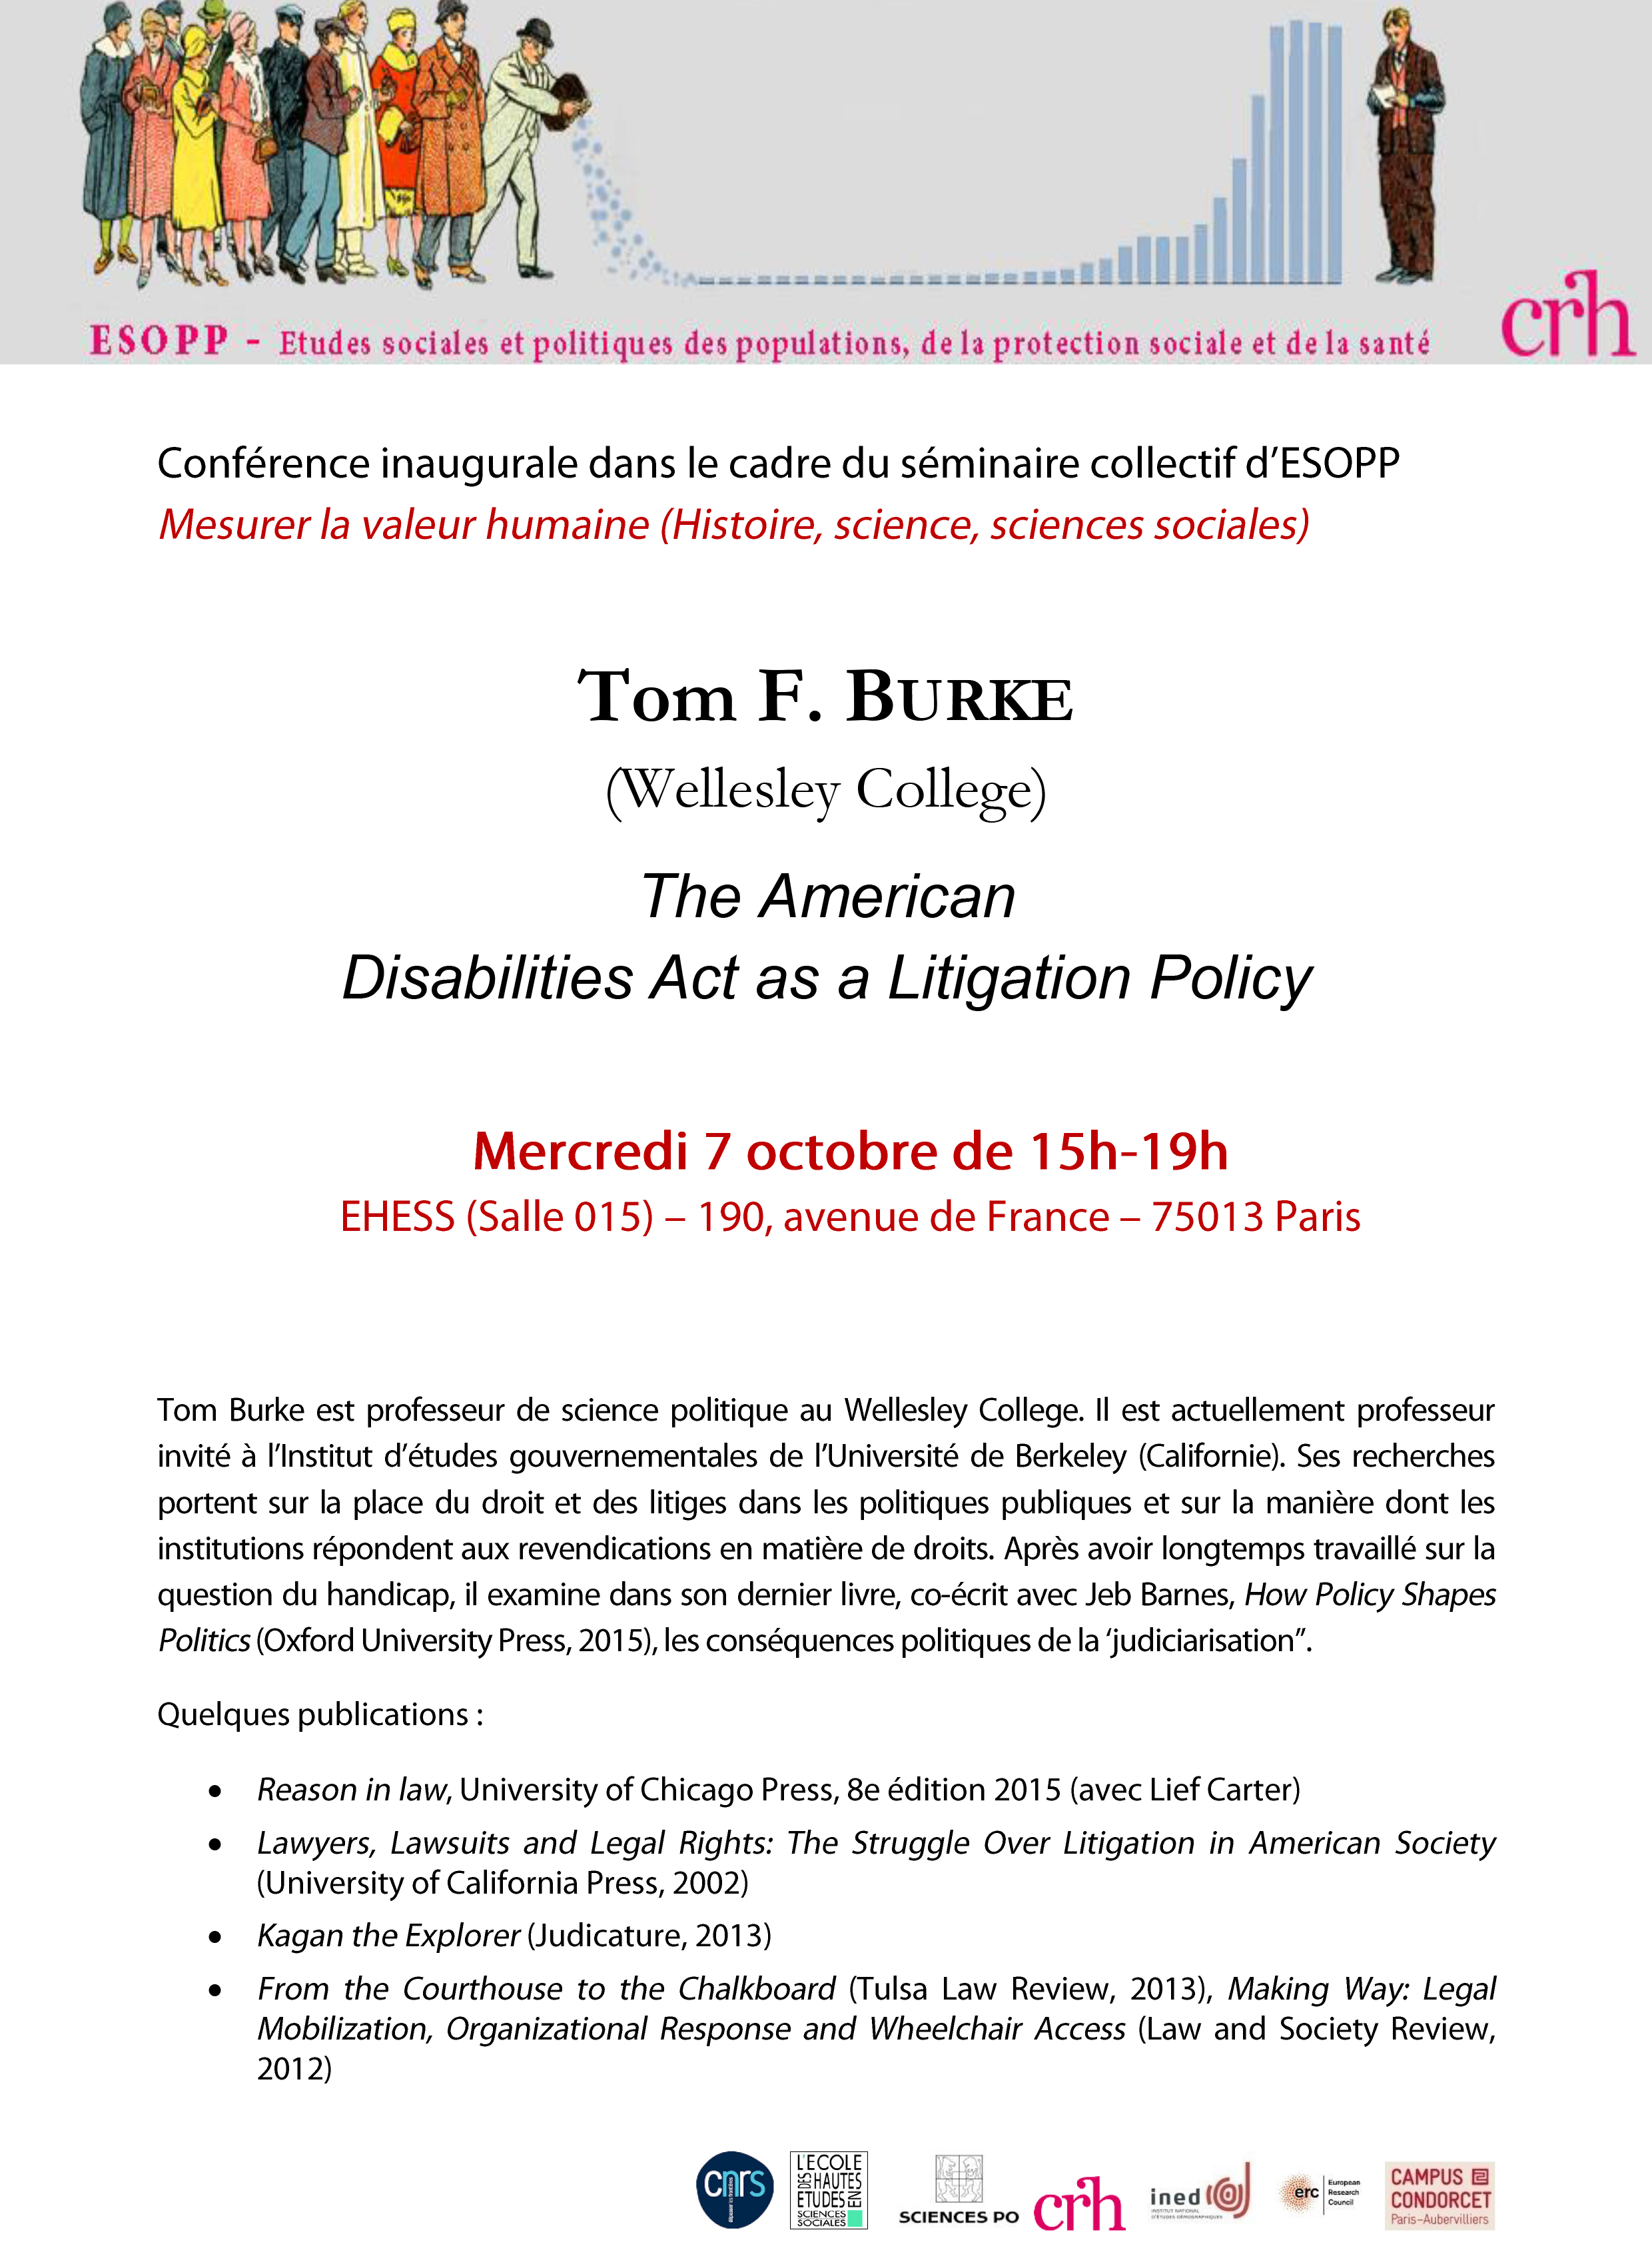 Conférence de Tom Burke : The American Disabilities Act as a Litigation Policy